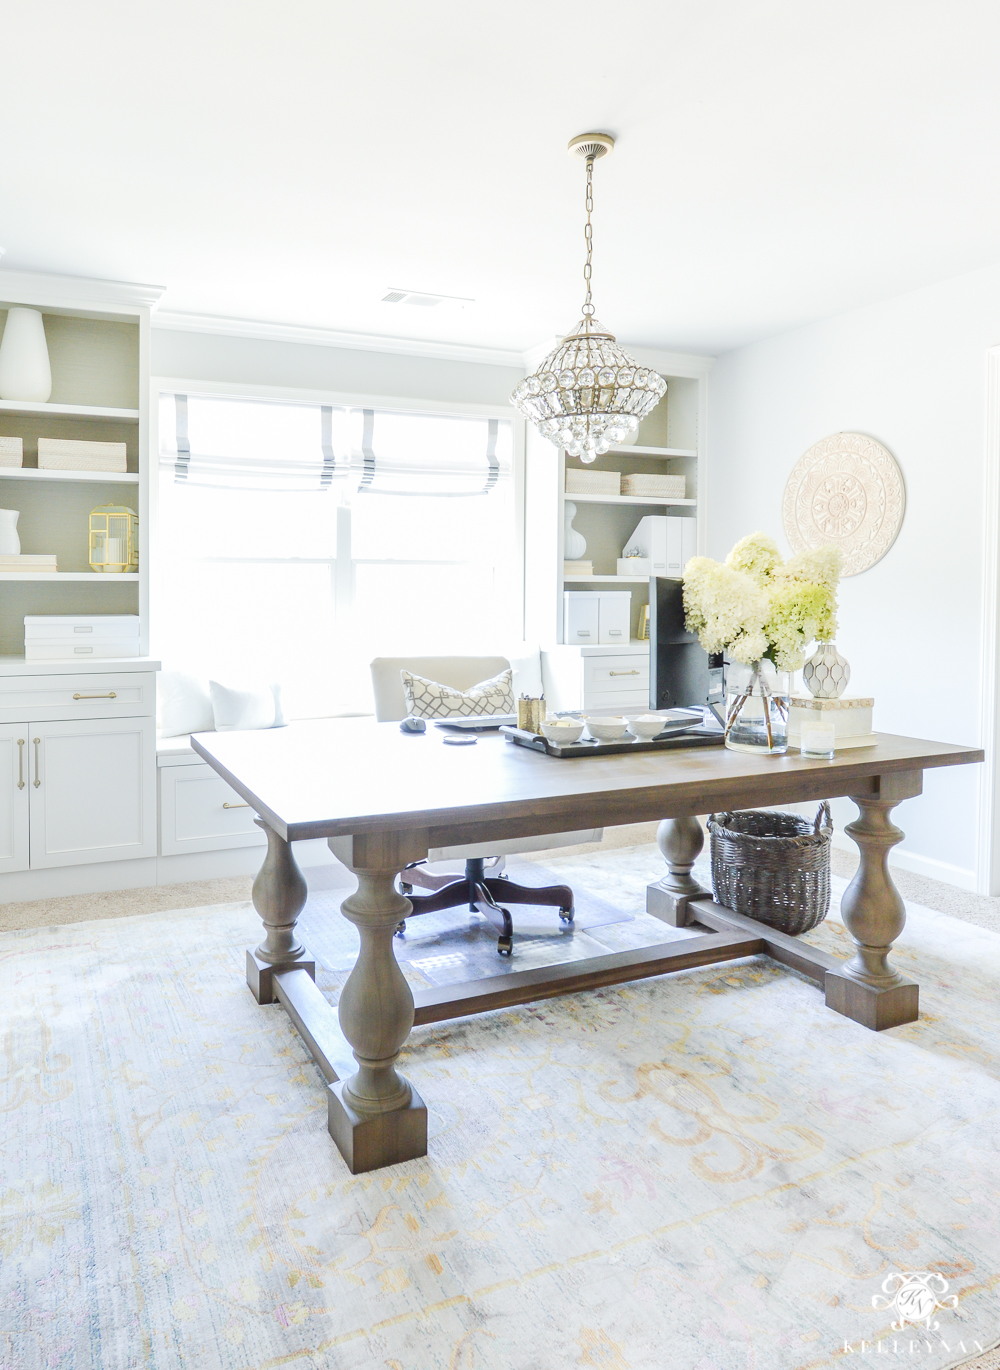 Double office desk Area Using Dining Room Table As An Office Desk In Your Home Office Kelley Nan Dining Tables That Can Double As Desks Kelley Nan